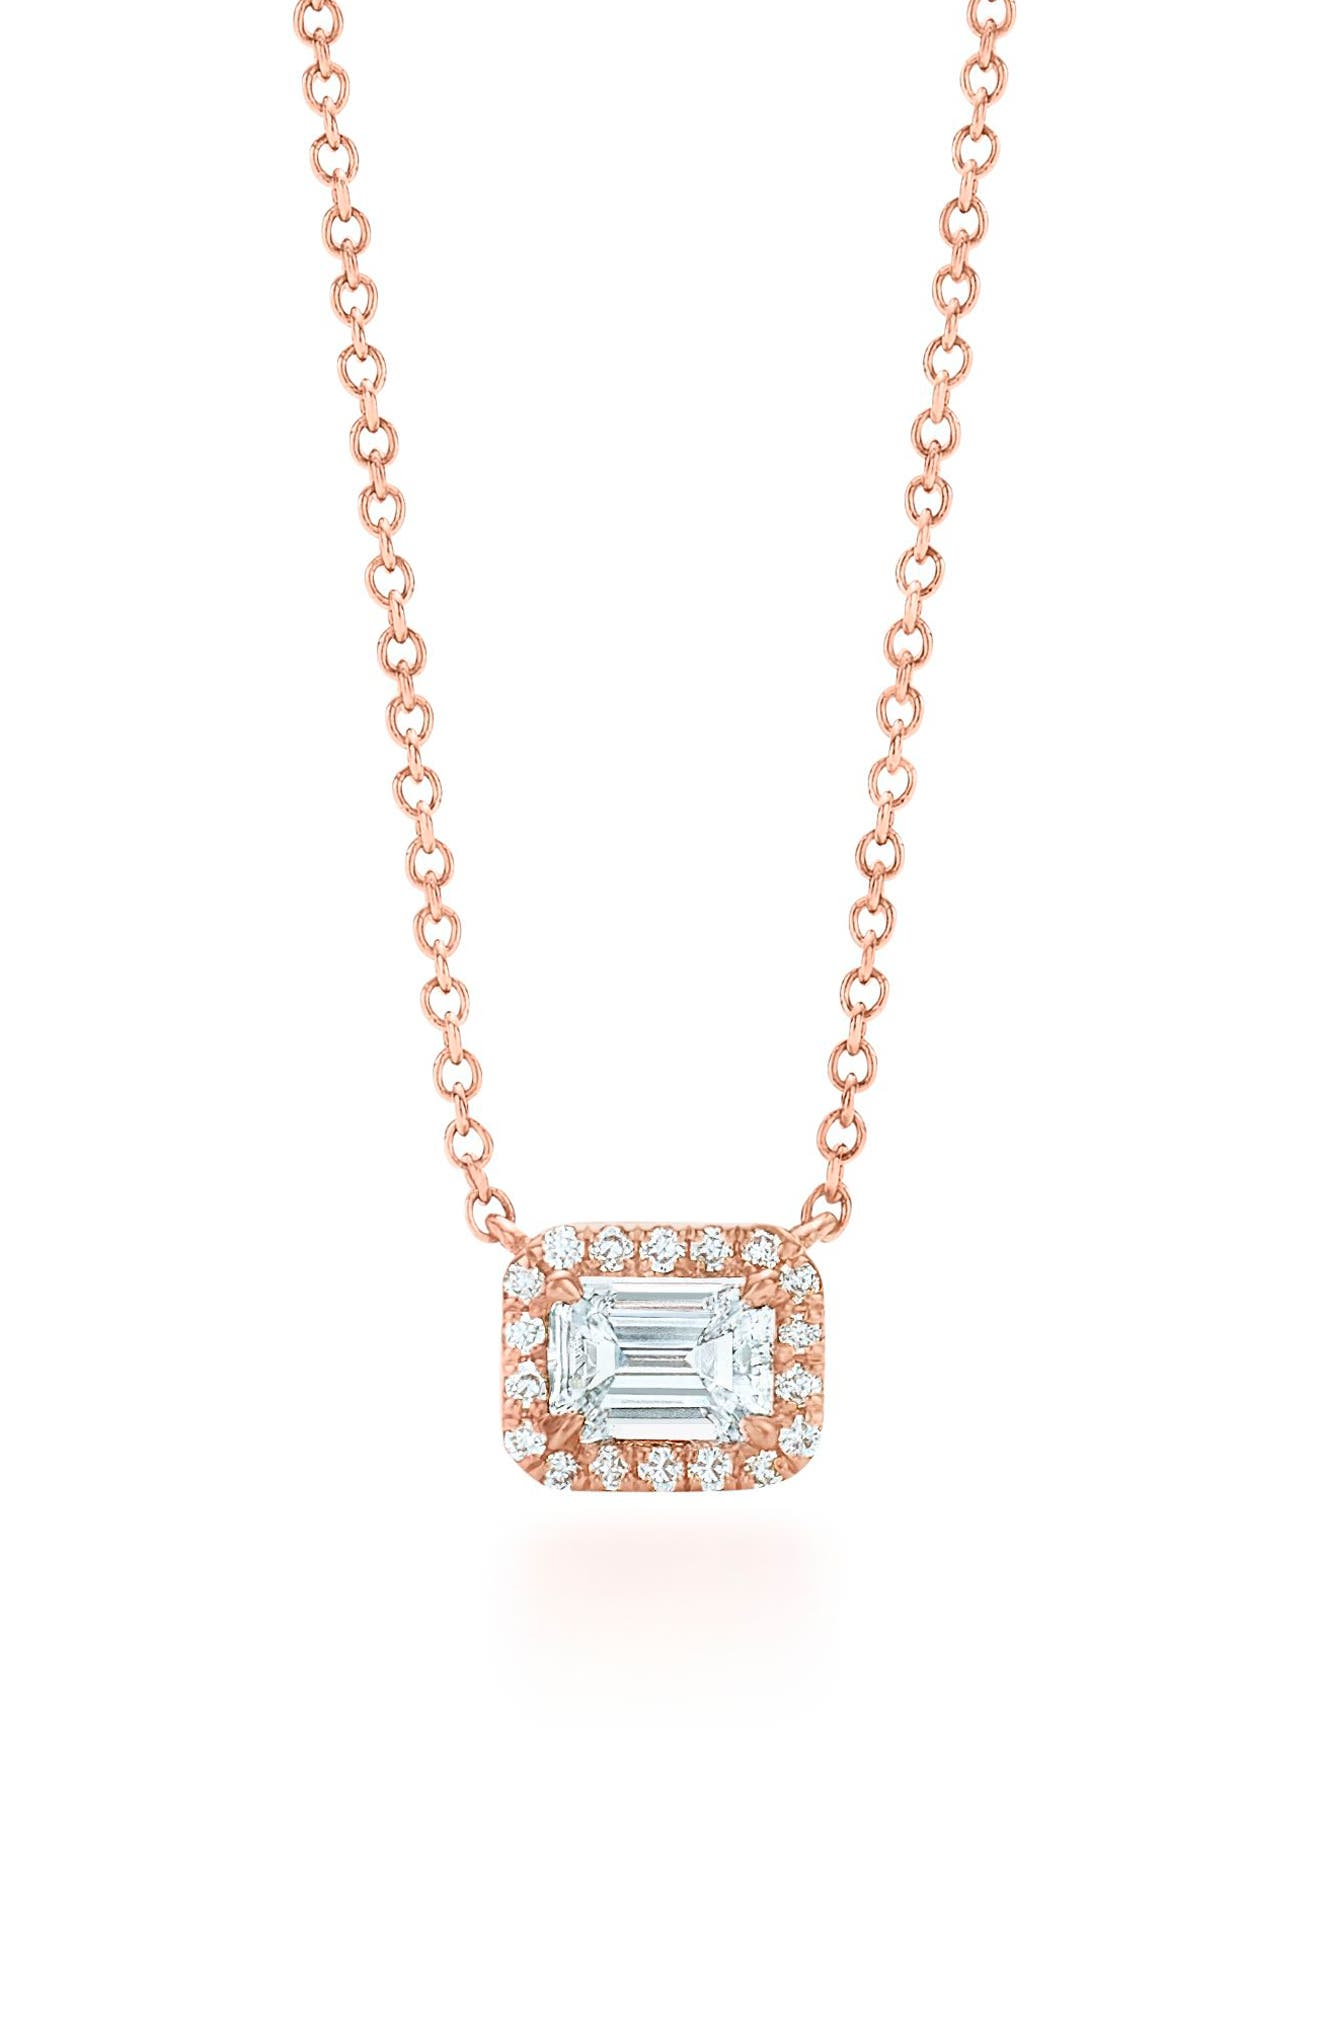 Emerald Cut Diamond Pendant Necklace,                             Main thumbnail 1, color,                             Rose Gold